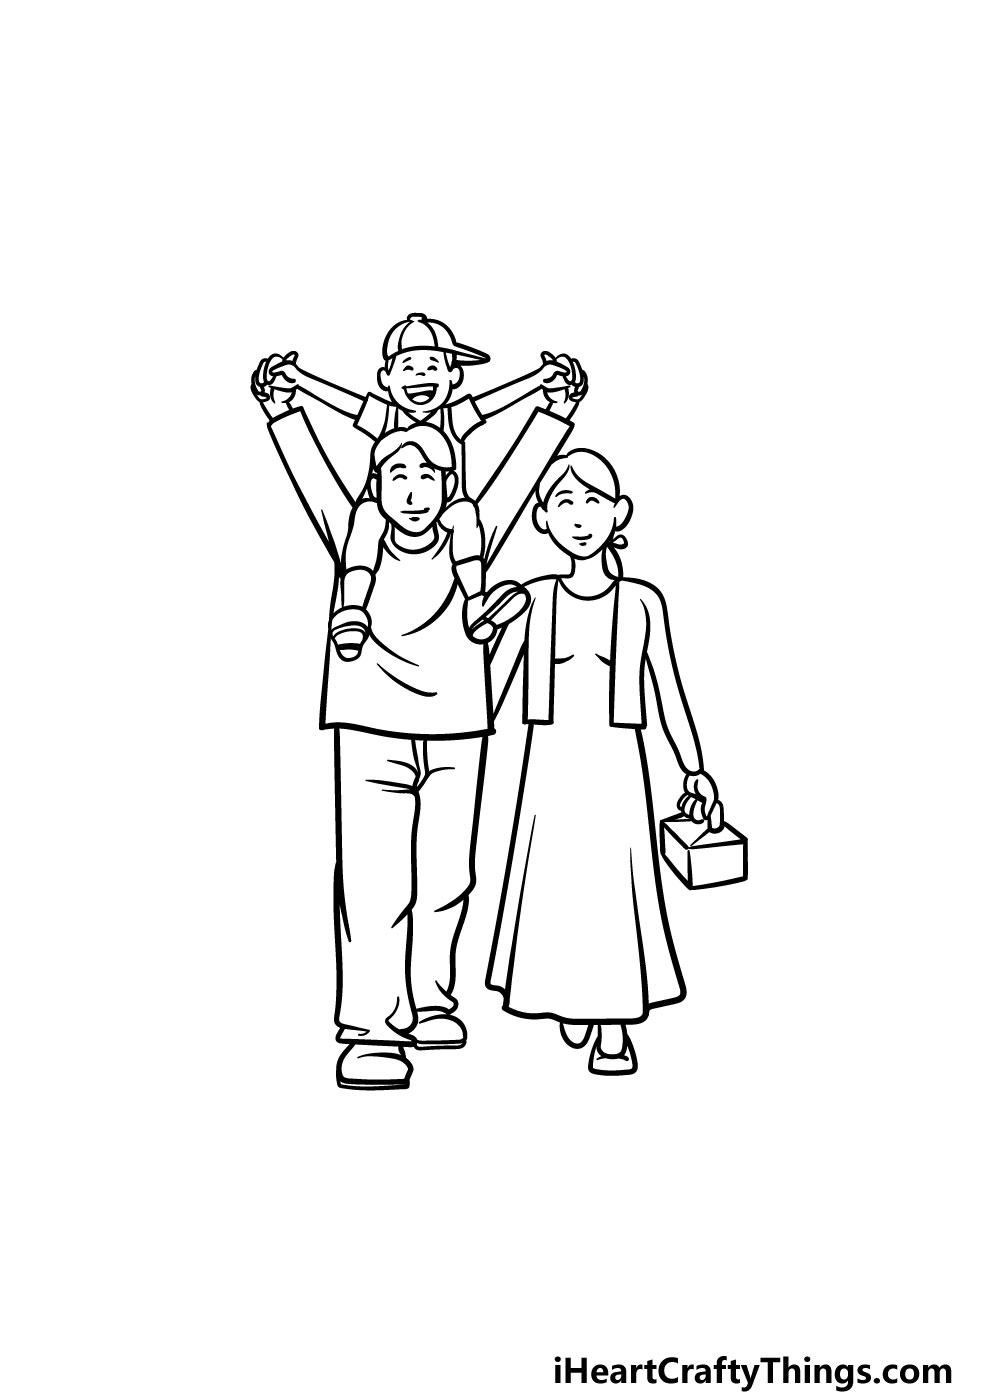 drawing a family step 7